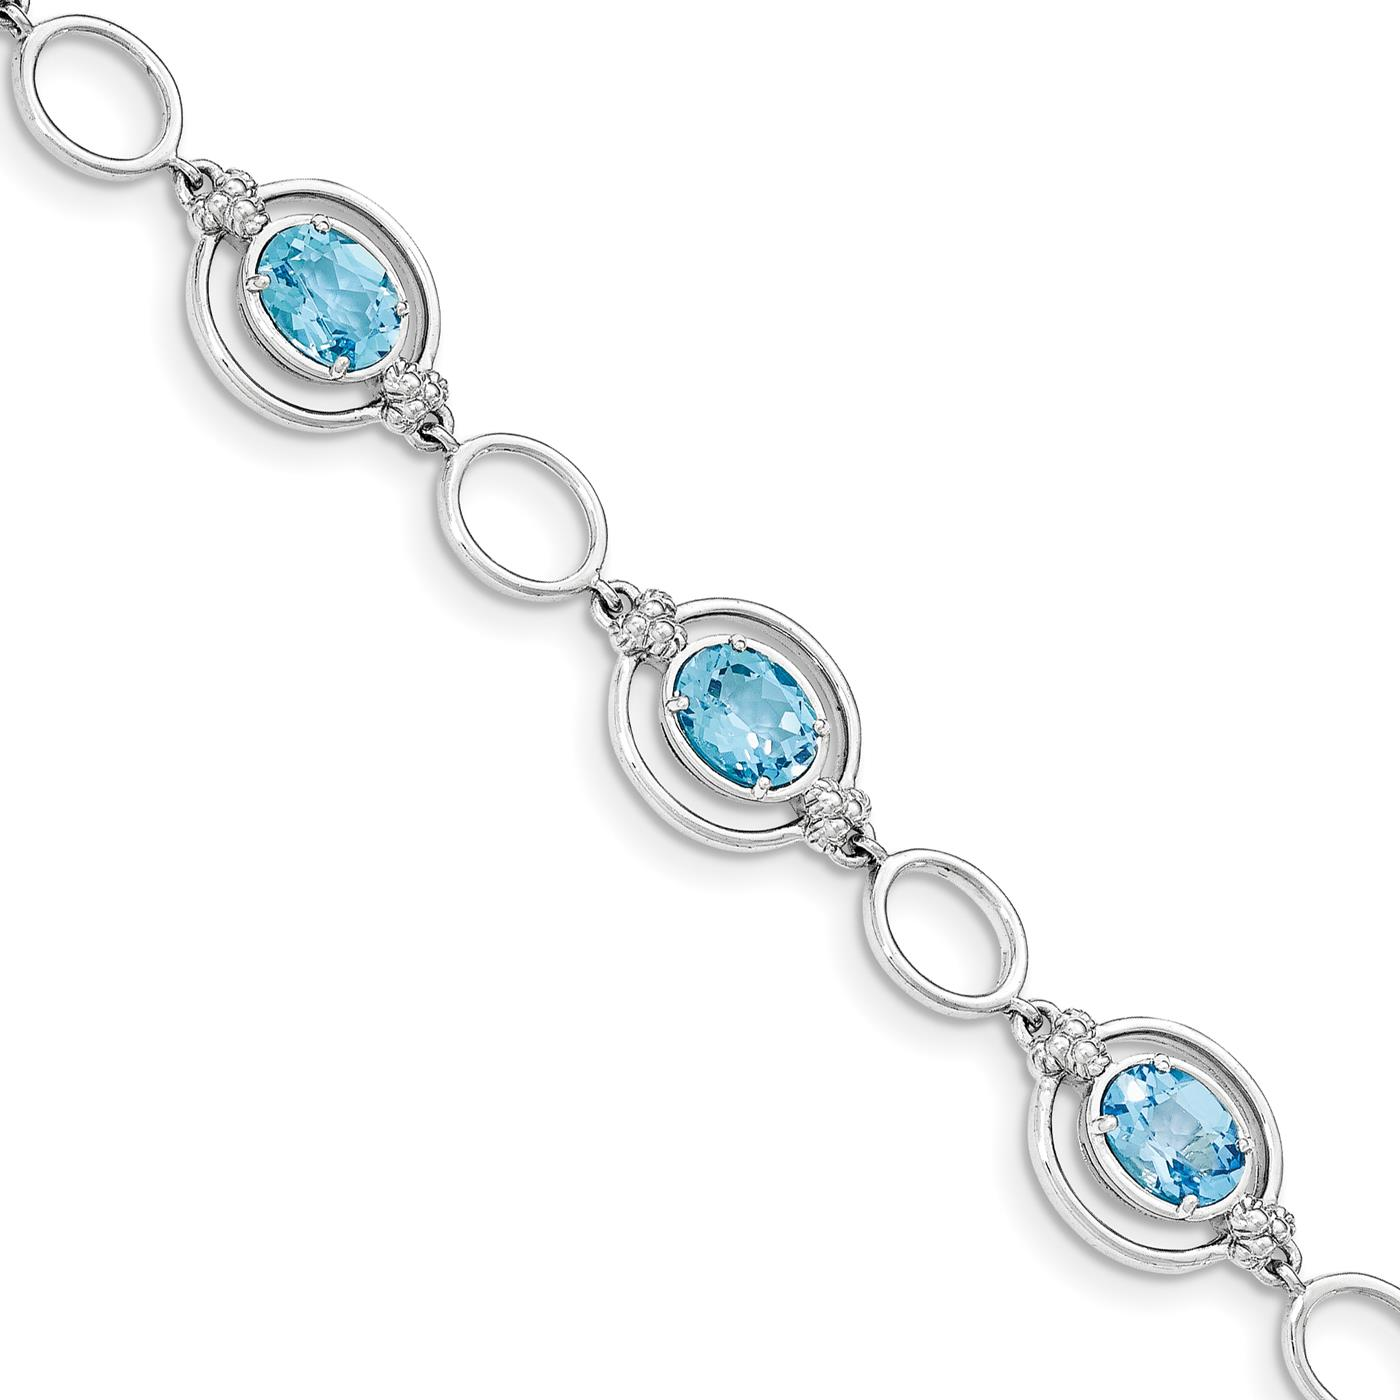 "Ladies Womens 925 Sterling Silver Lt. Swiss Blue Topaz Open Link Bracelet 7.5"" by Fusion Collections"